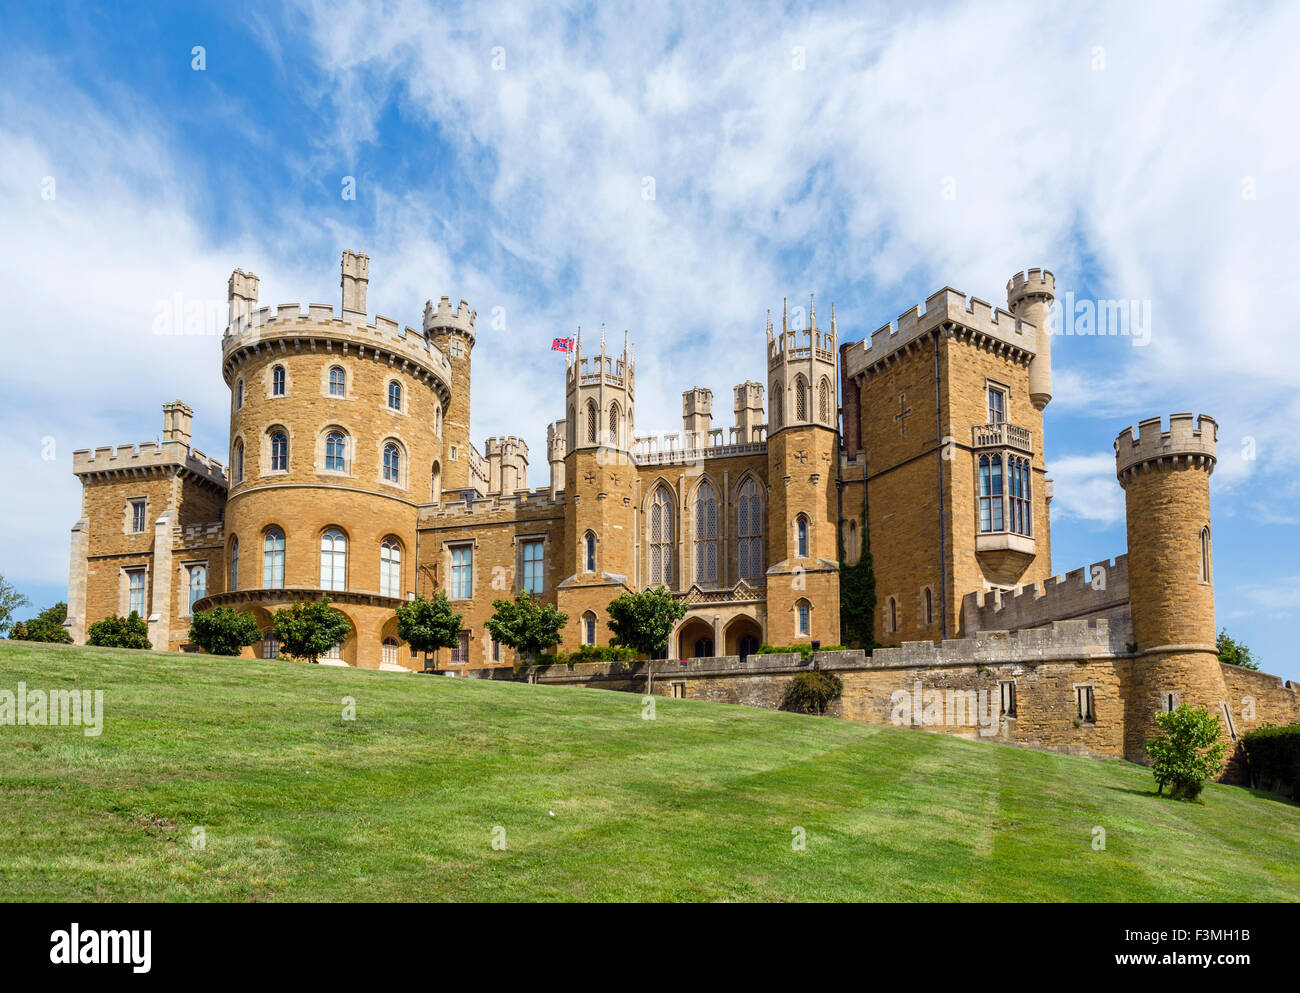 Belvoir Castle, a stately home in Leicestershire, England, UK - Stock Image